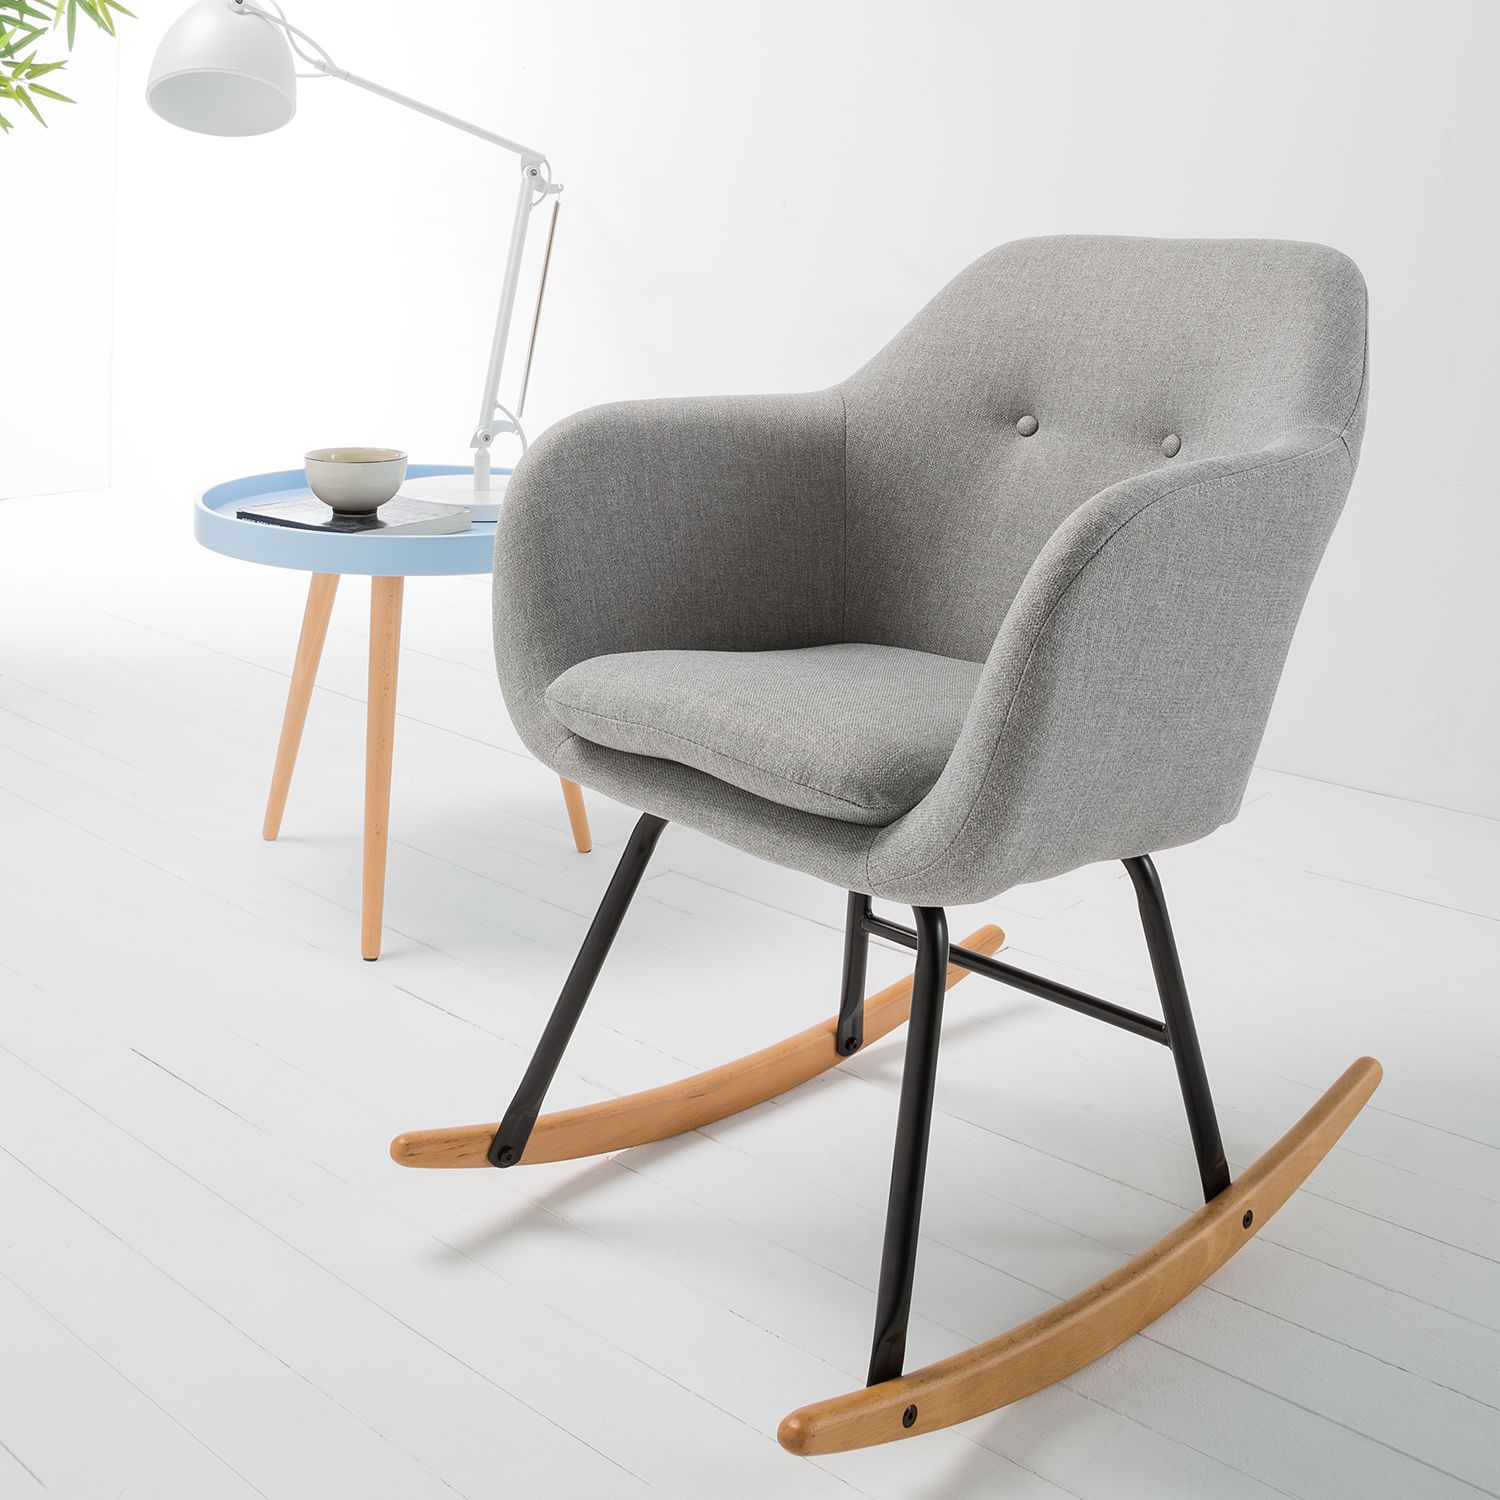 Chaise à bascule scandinave pour le salon - Home24 -